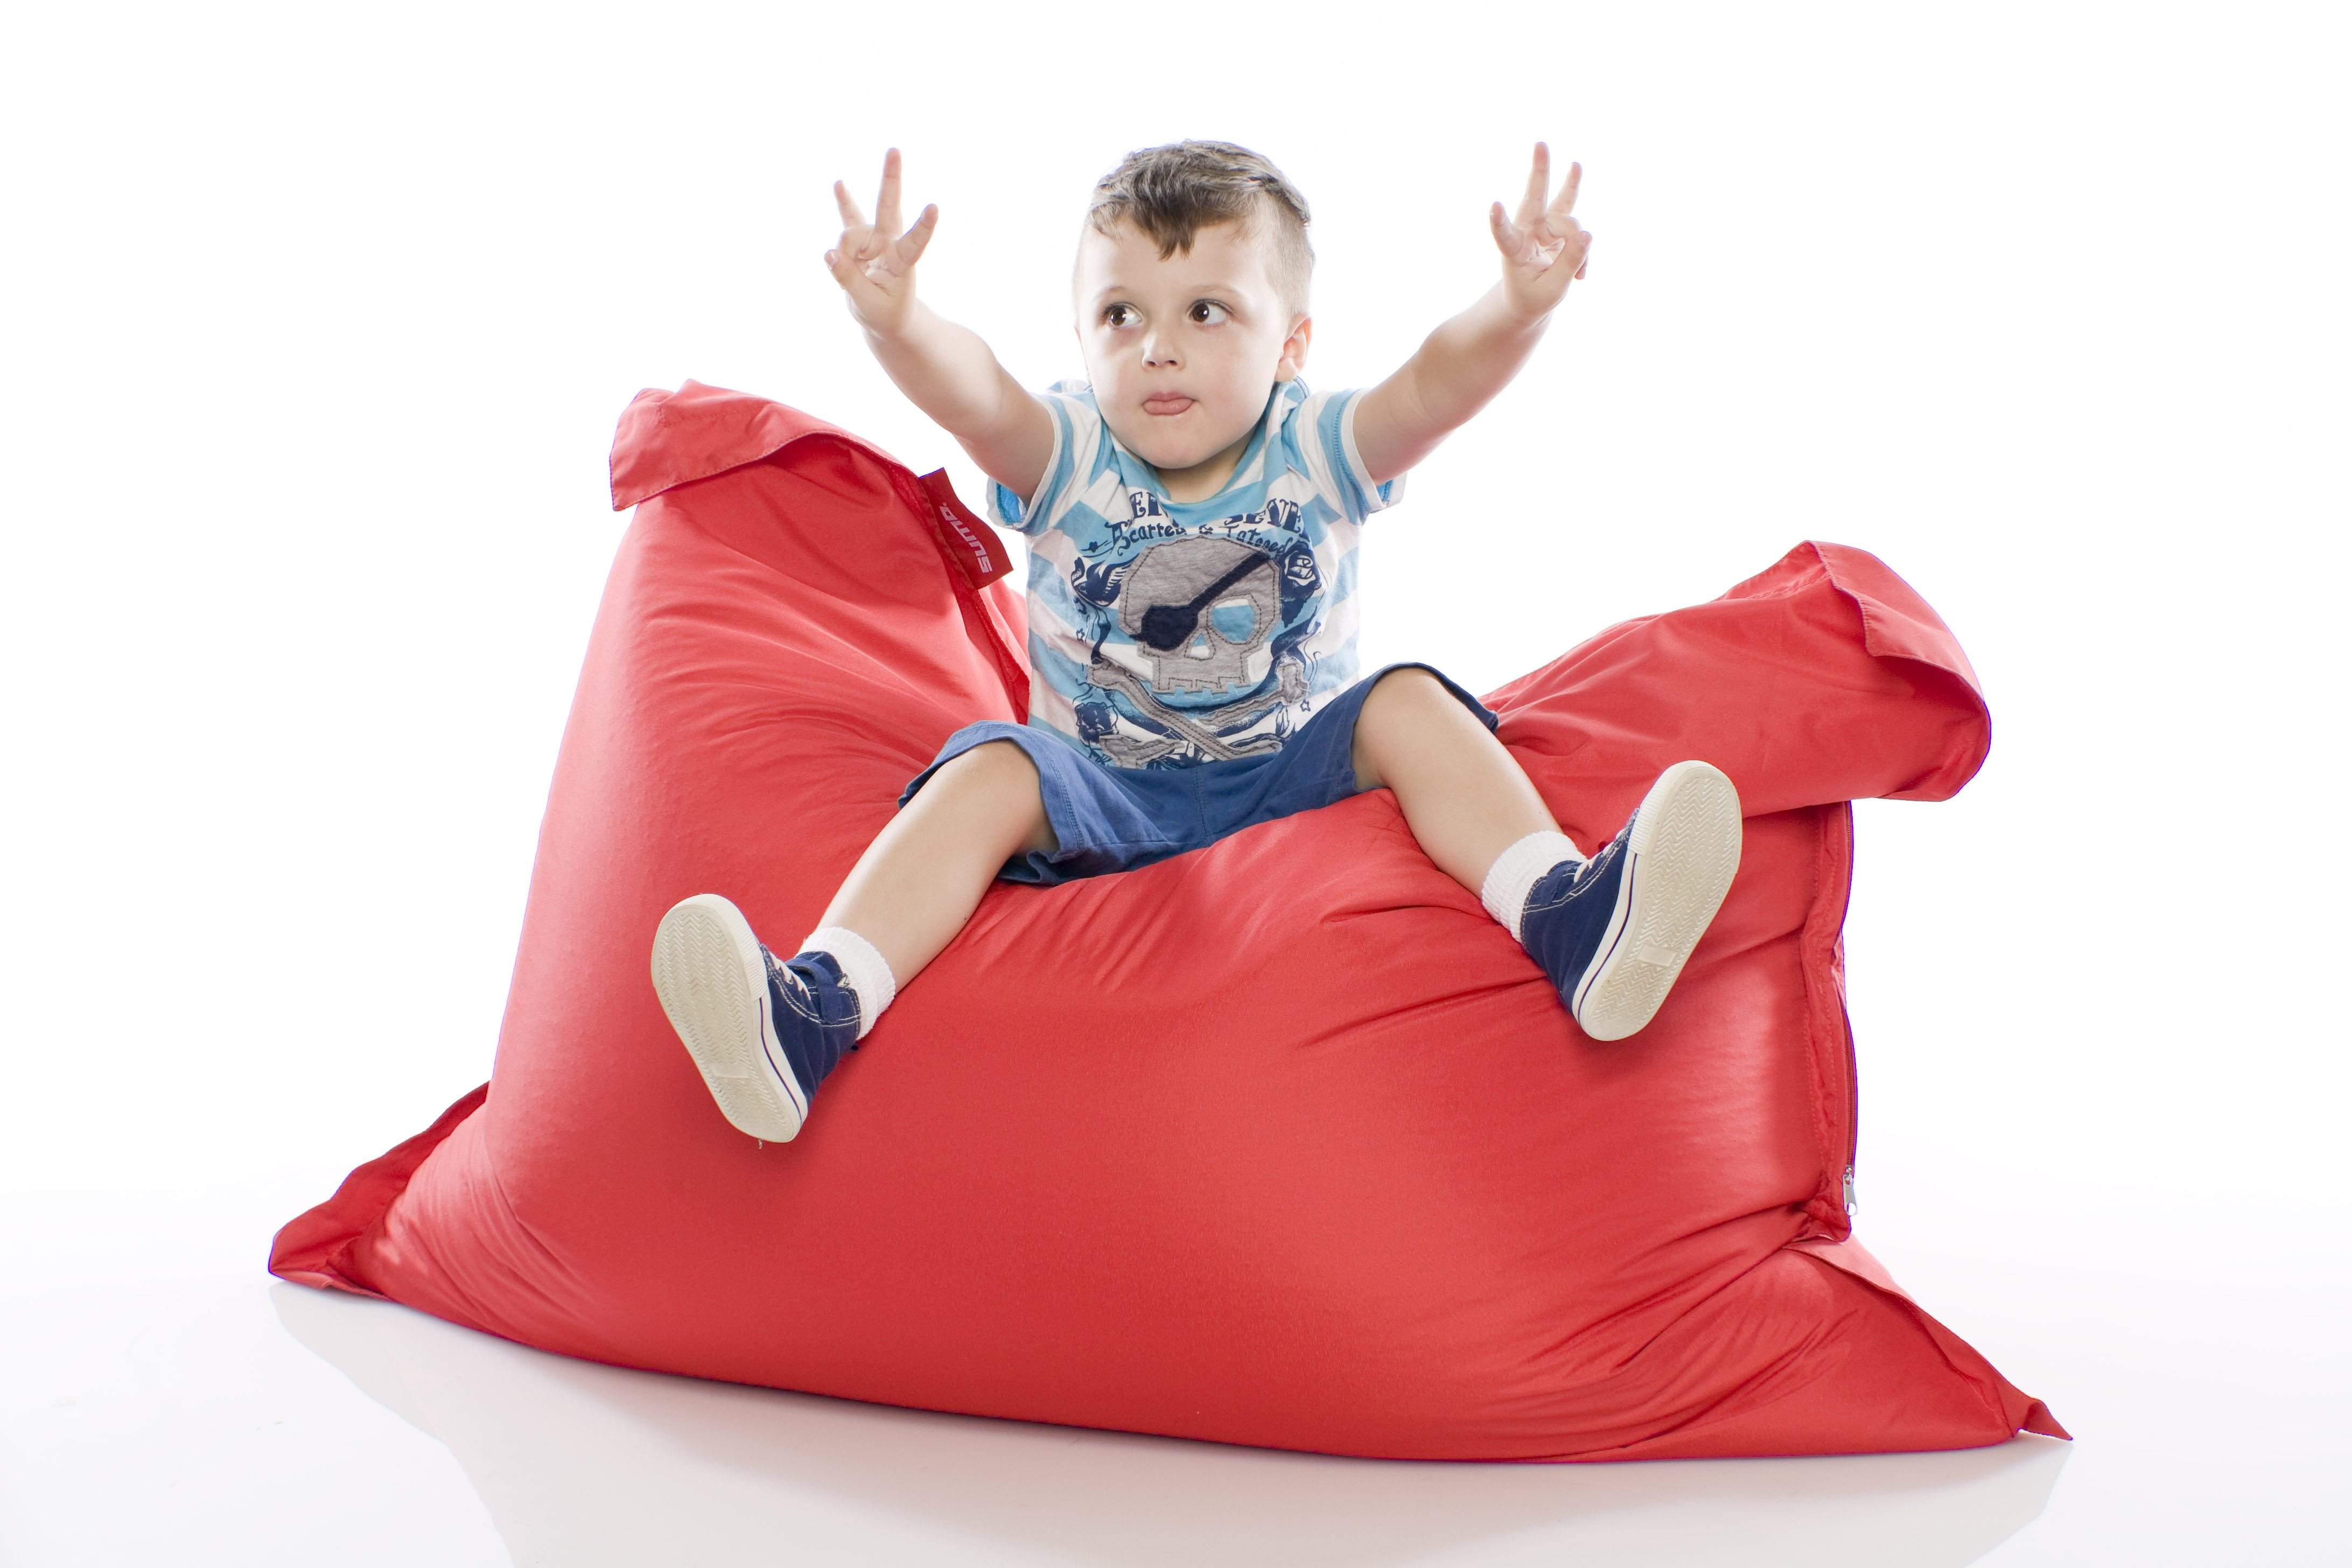 Kid on a Sumo bean bag chair